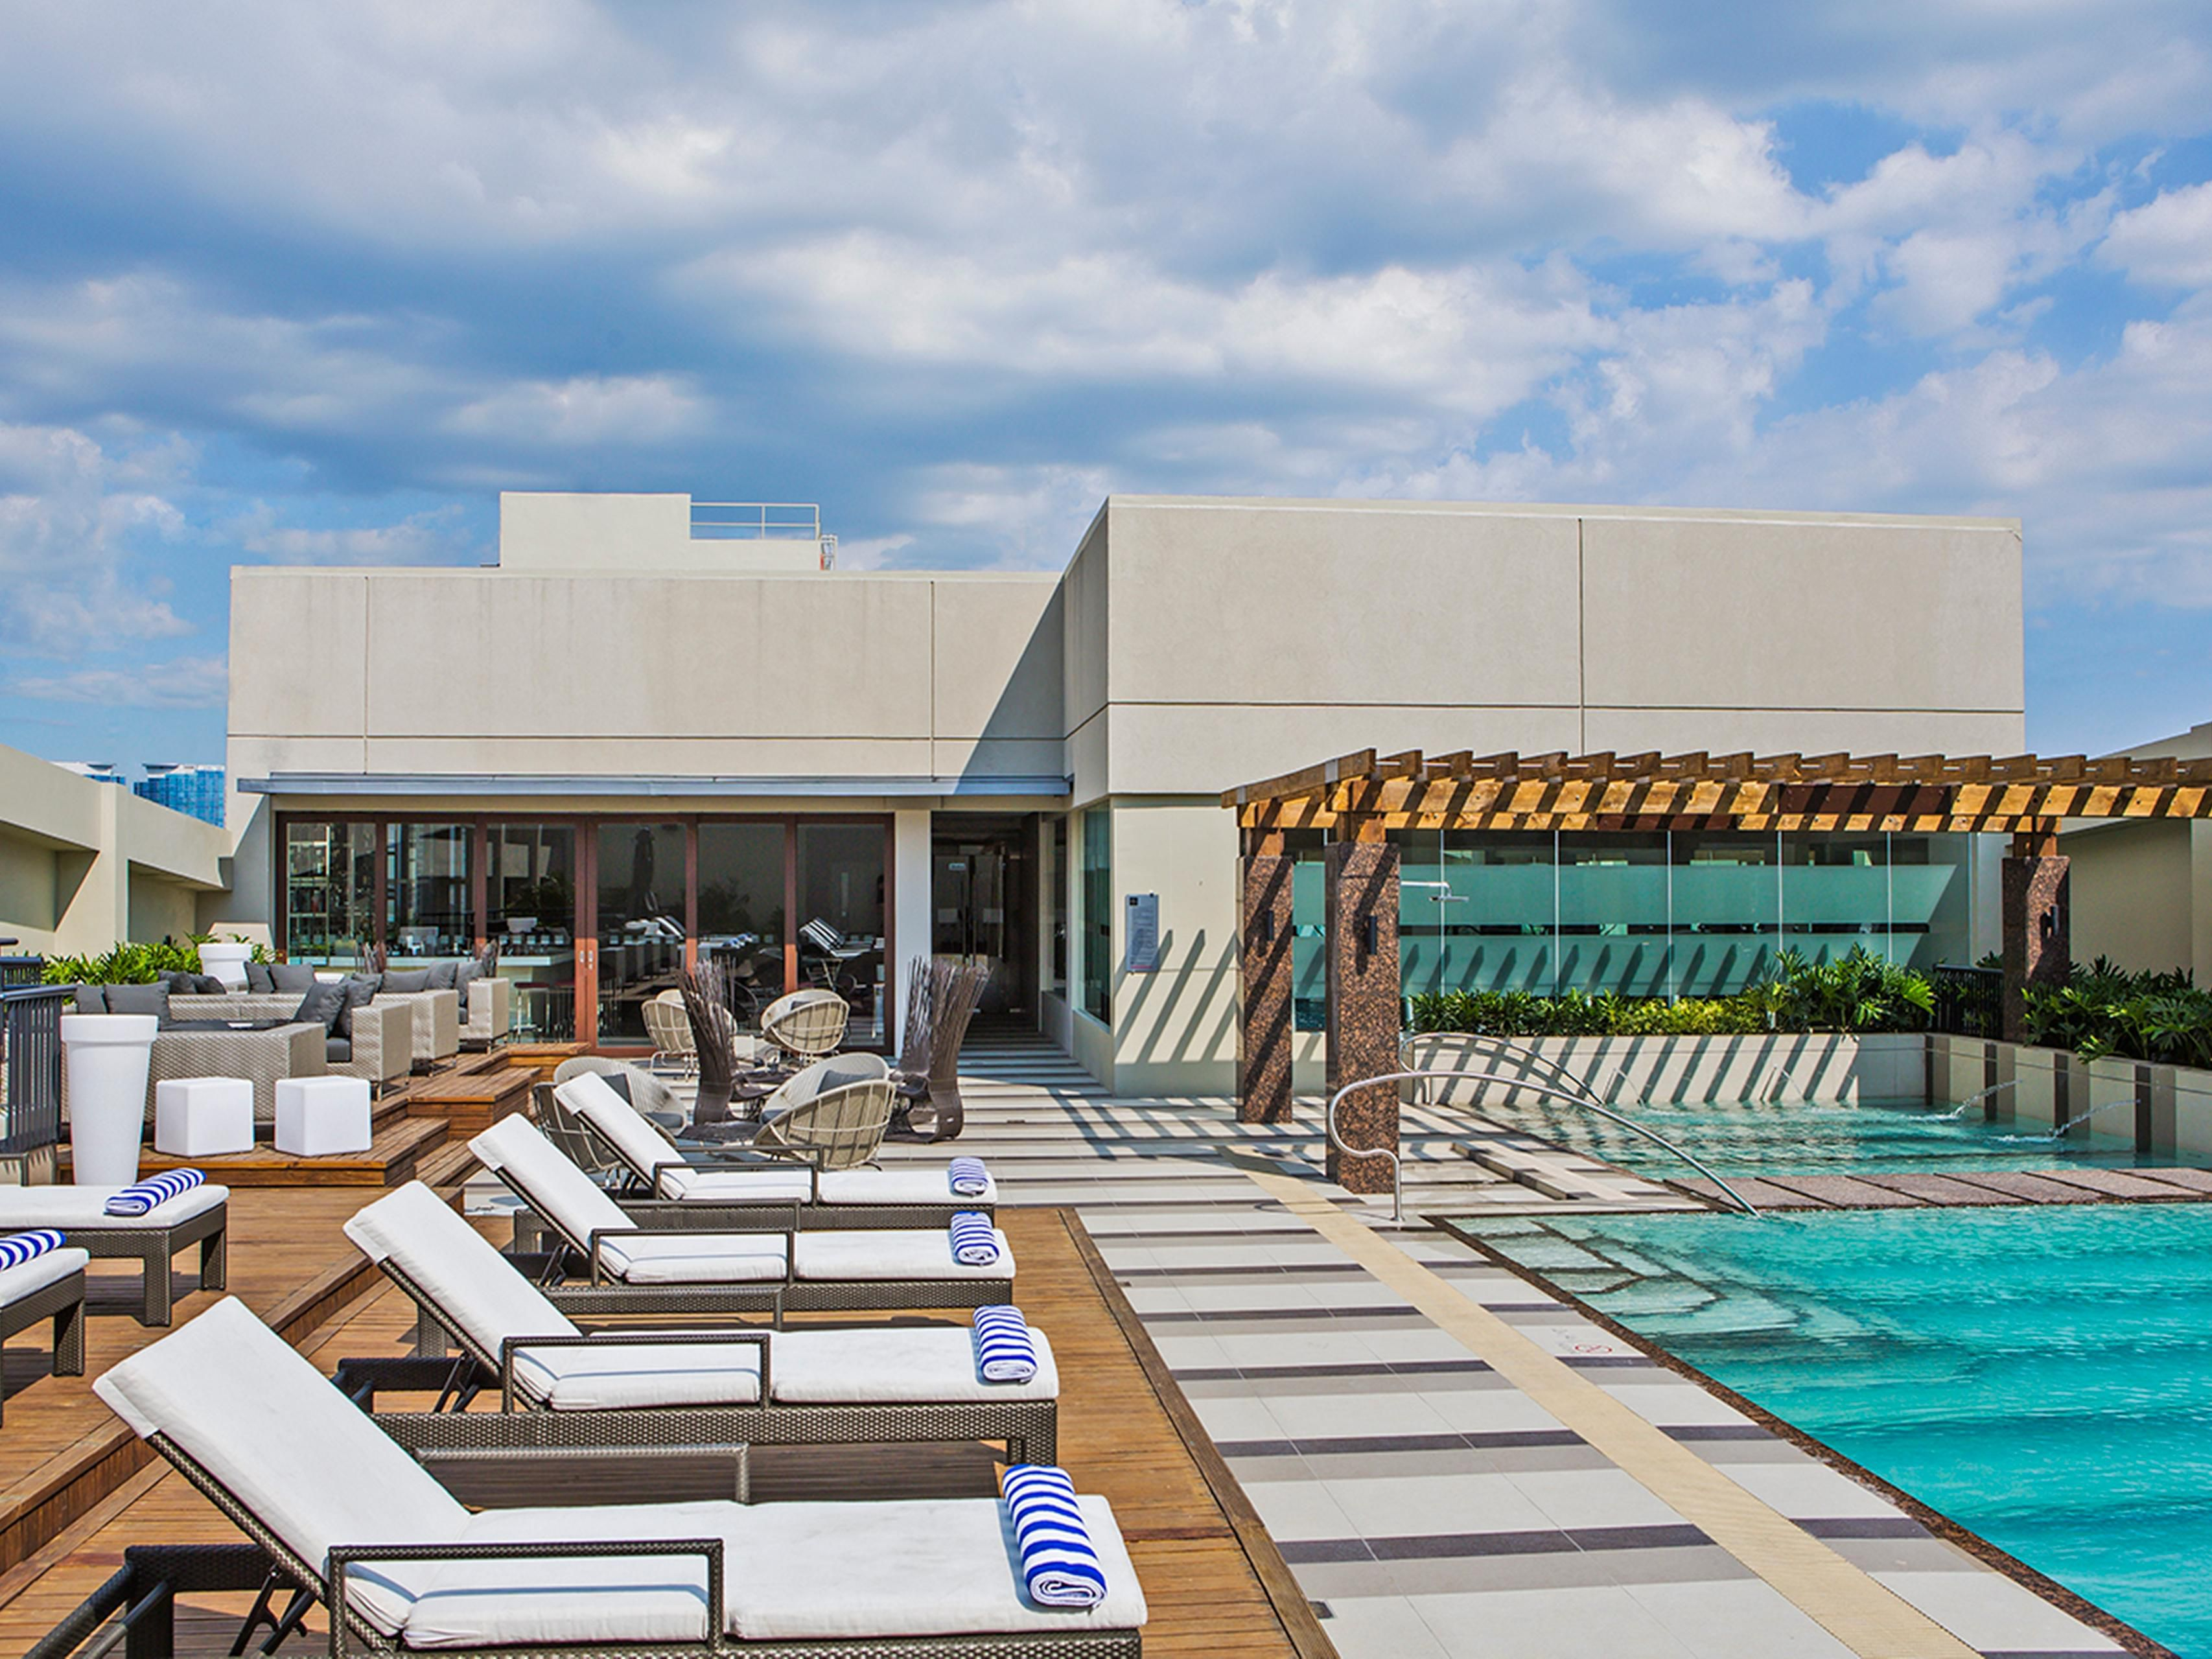 Soak up the sun in our roofdeck swimming pool